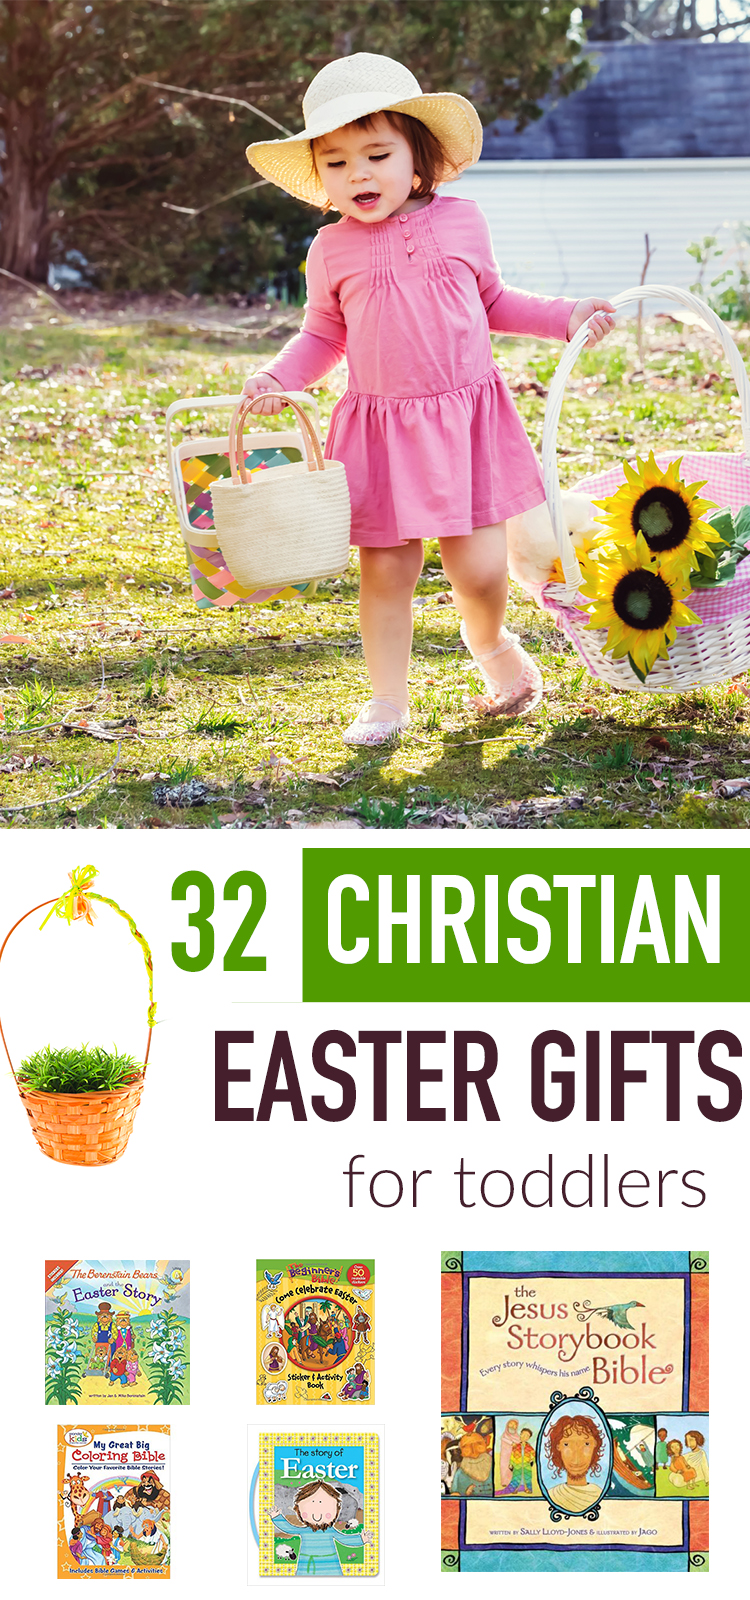 32 cute christian easter gifts for toddlers christ centered holidays easter baskets toddlers easter ideas toddlers easter gifts for toddlers easter gifts toddlers negle Images